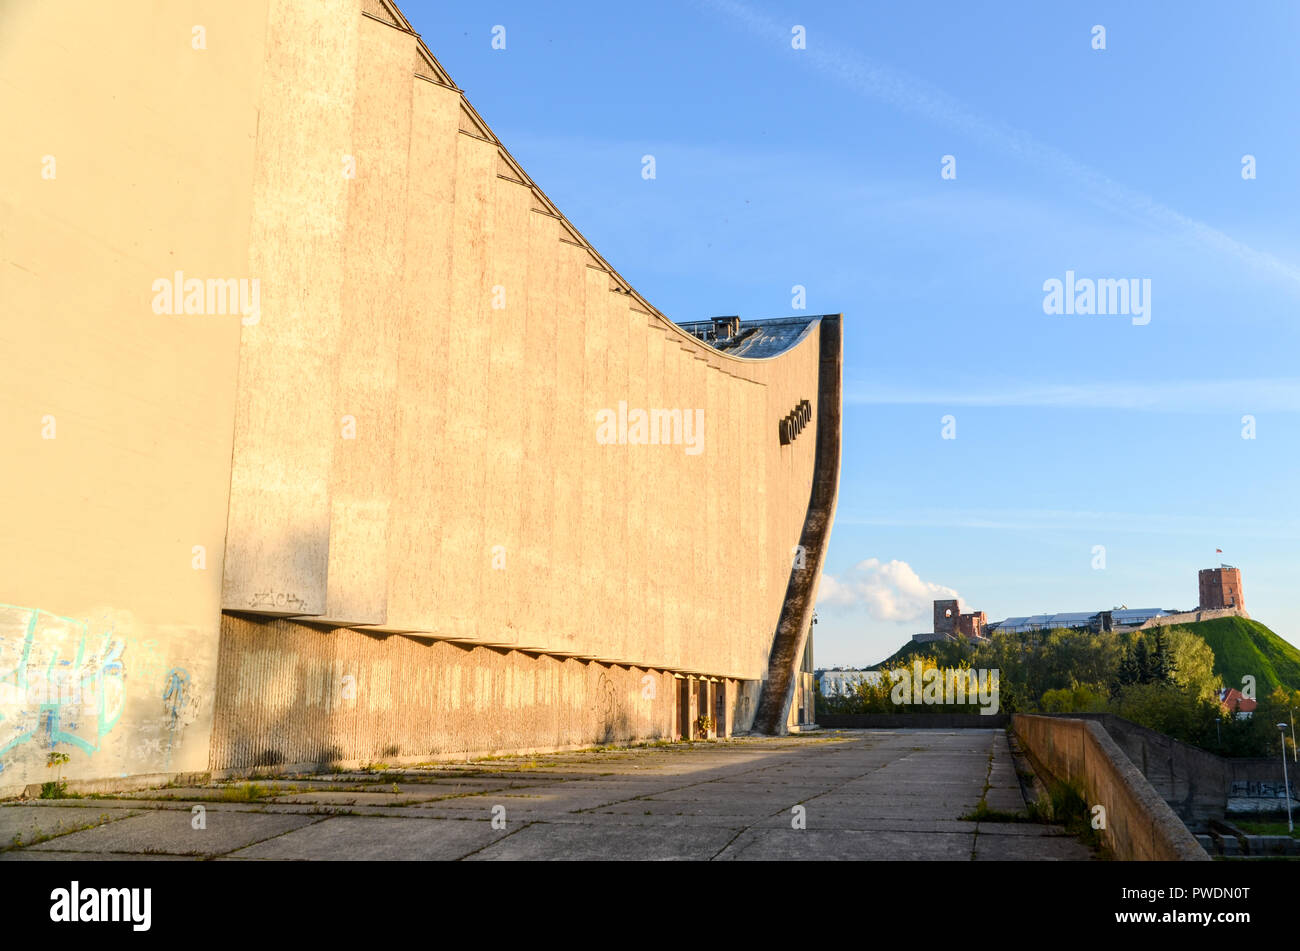 Vilnius Palace of Concerts and Sports, a large disused building by the Neris river Stock Photo